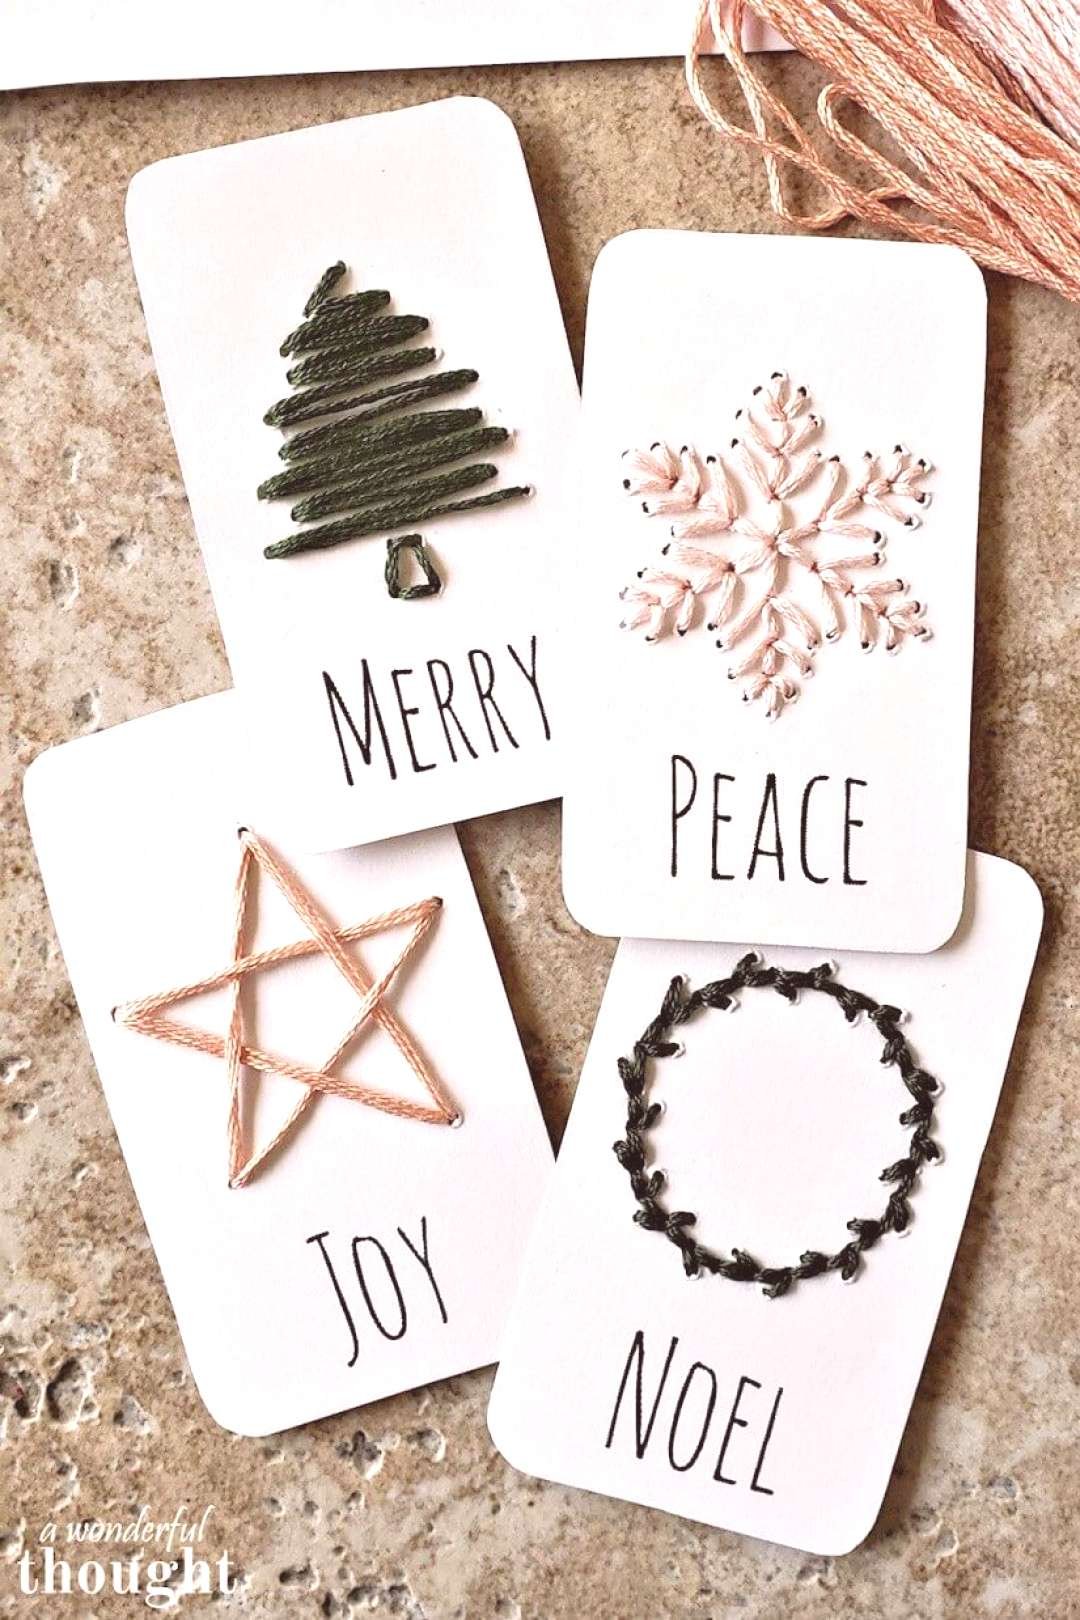 40+ Free Printable Christmas Gift Tags to Wrap Presents